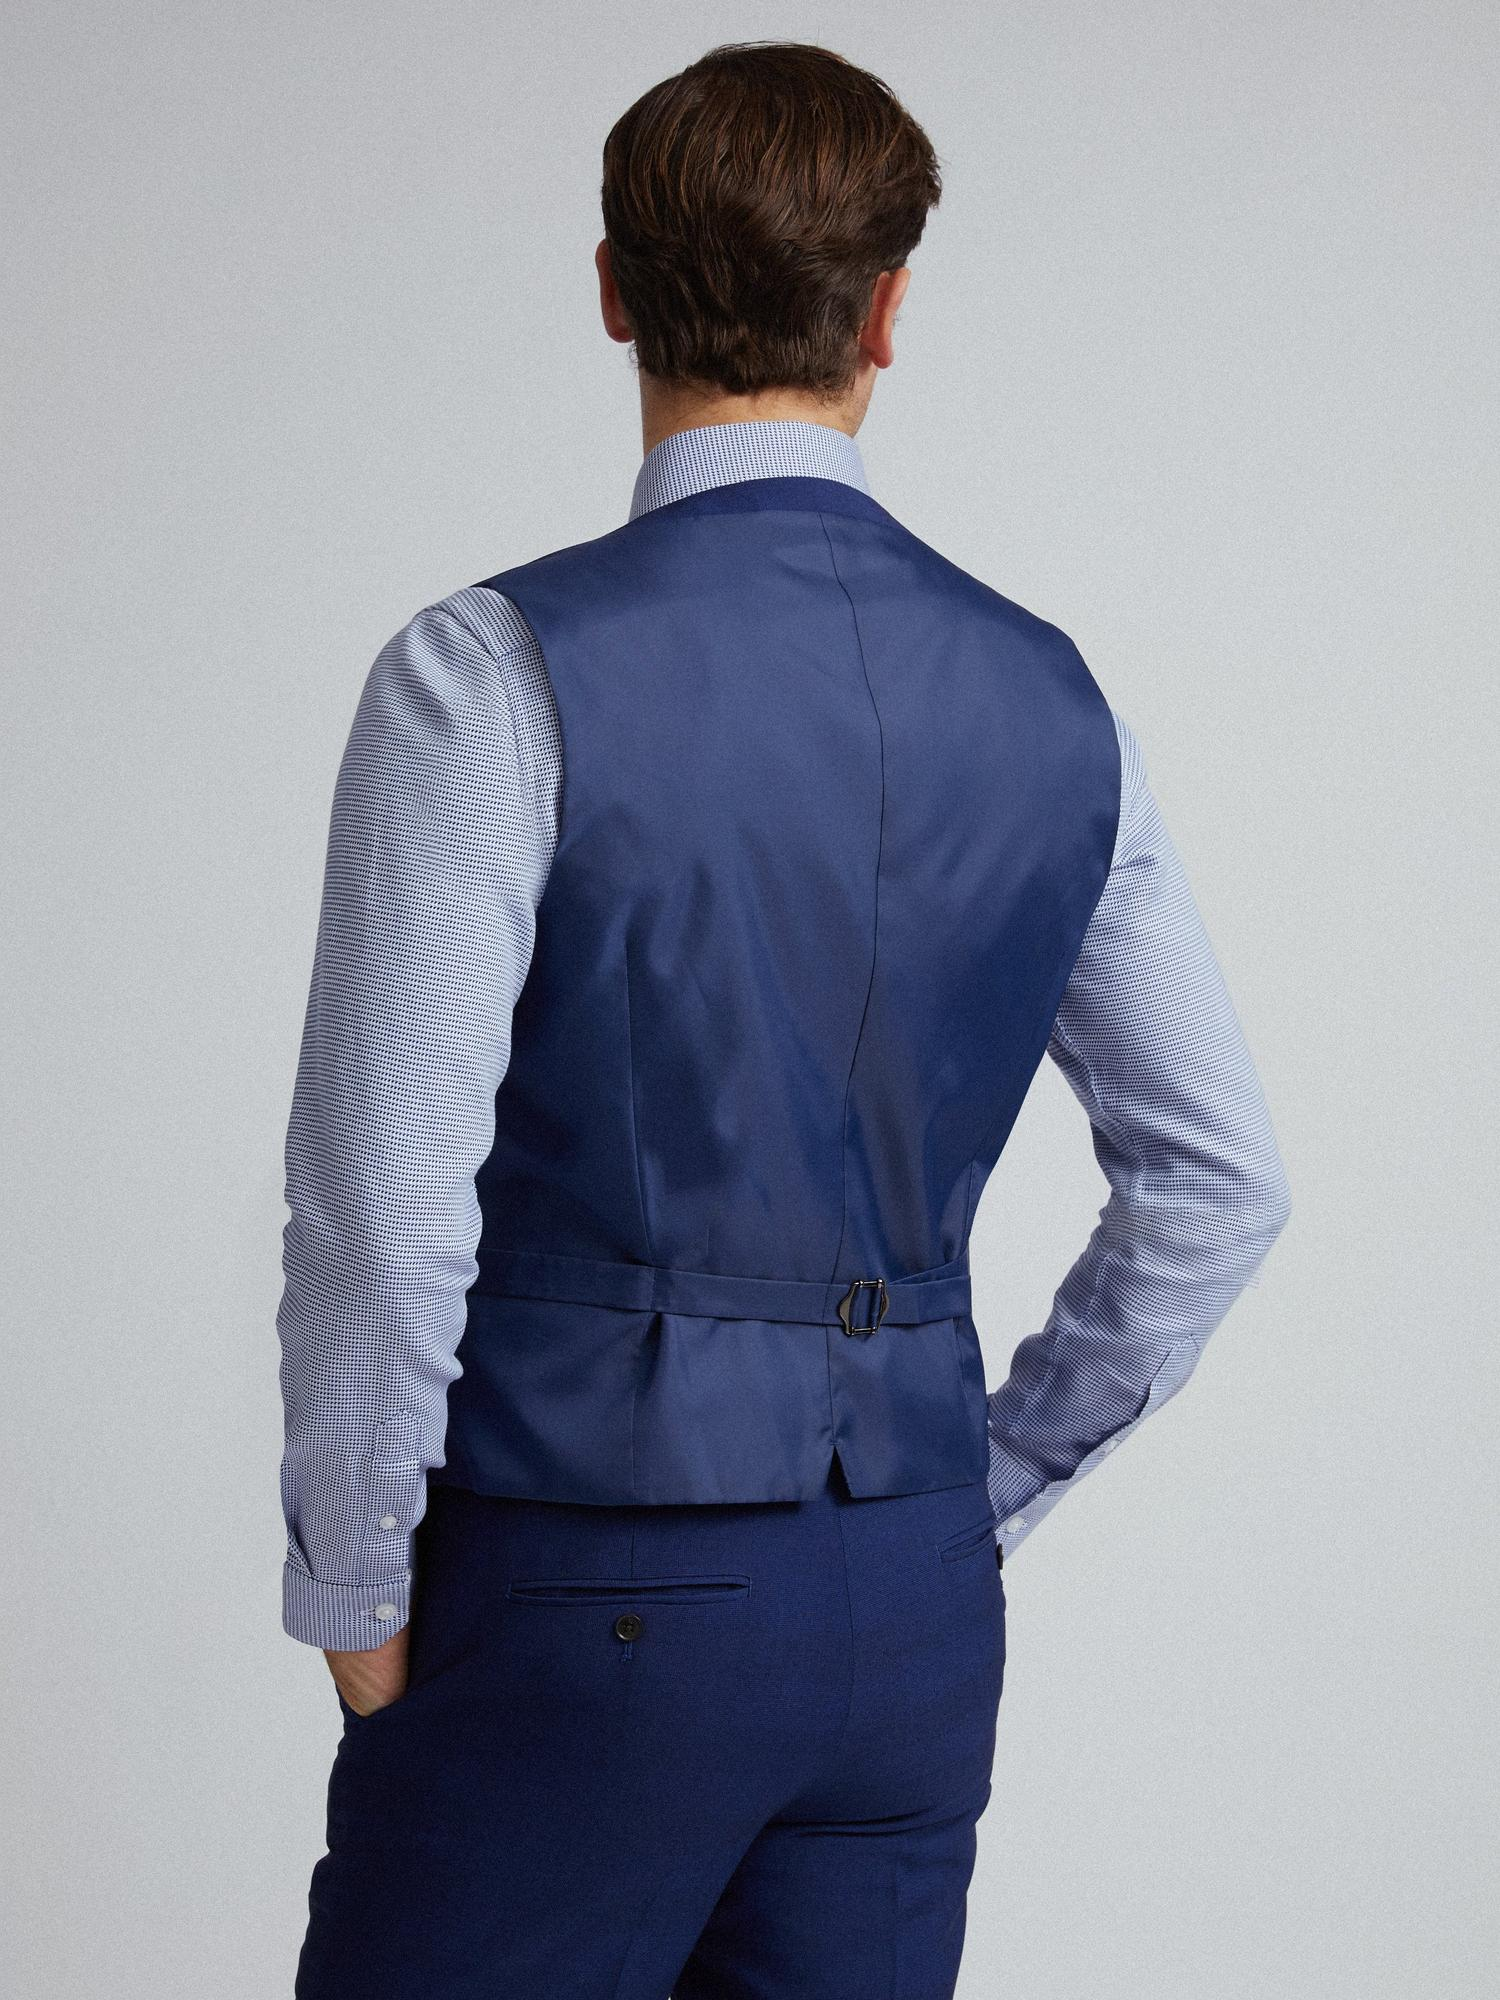 106 Blue Self Check Tailored Fit Suit Waistcoat image number 2